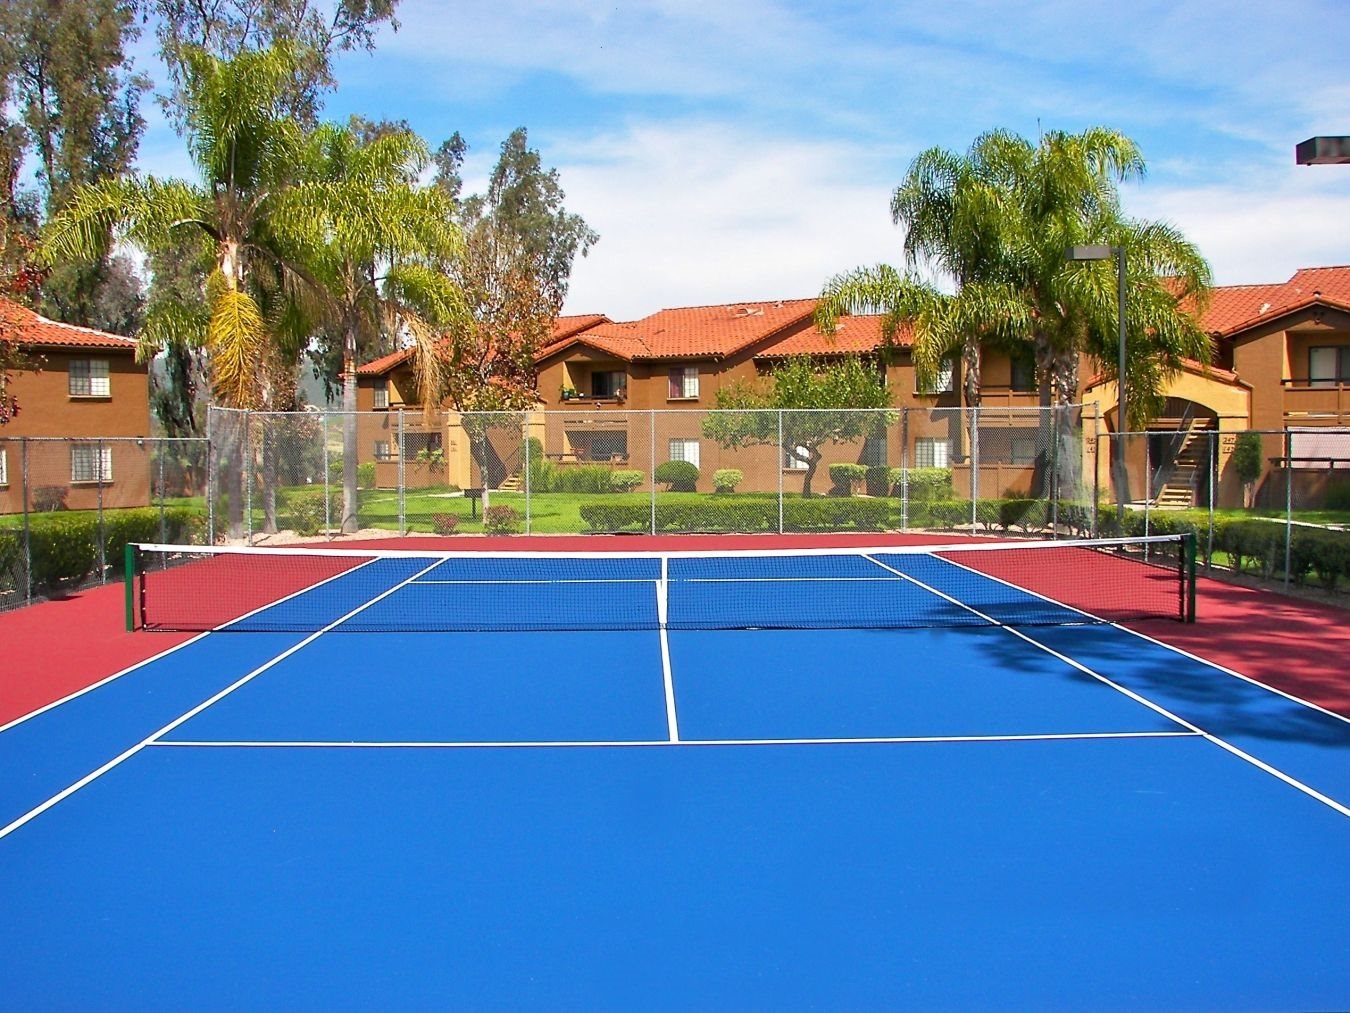 Tennis Courts at Barham Villas Apartments, San Marcos, California